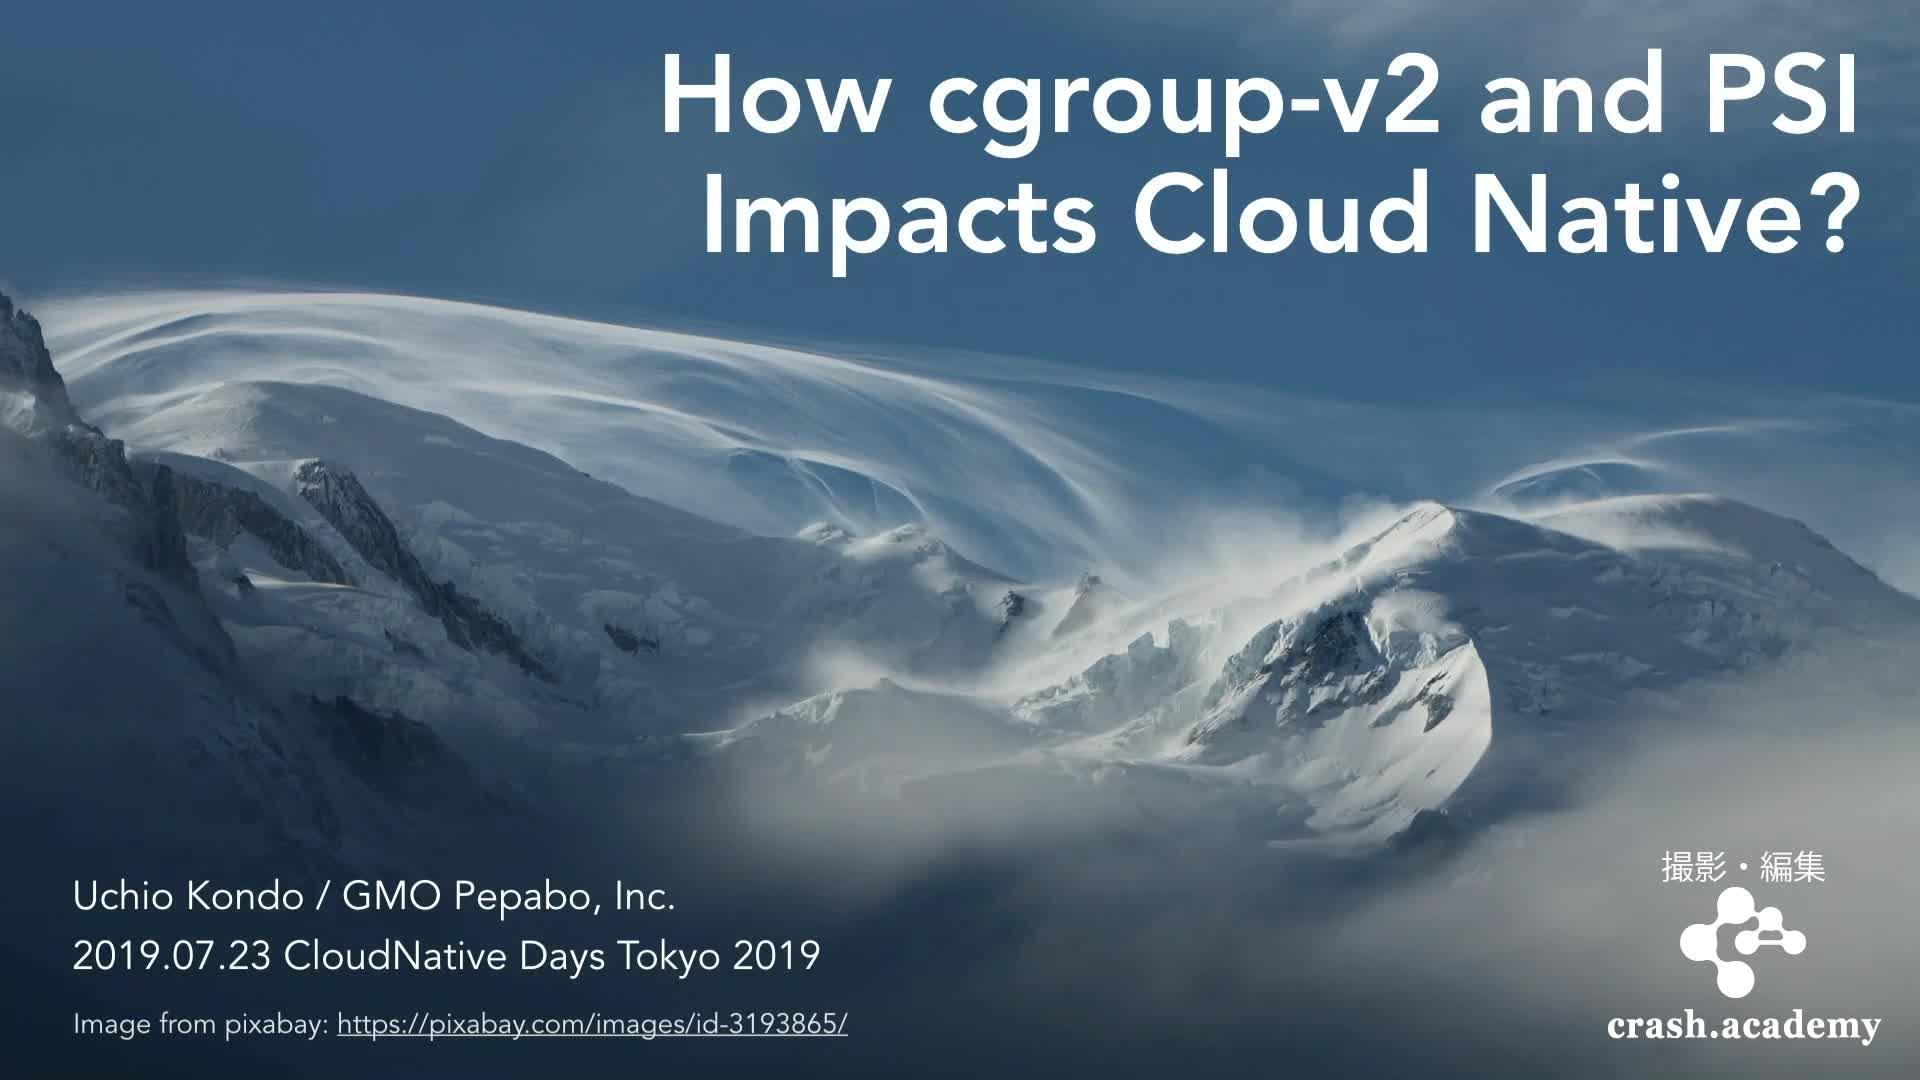 How cgroup-v2 and PSI impacts CloudNative?